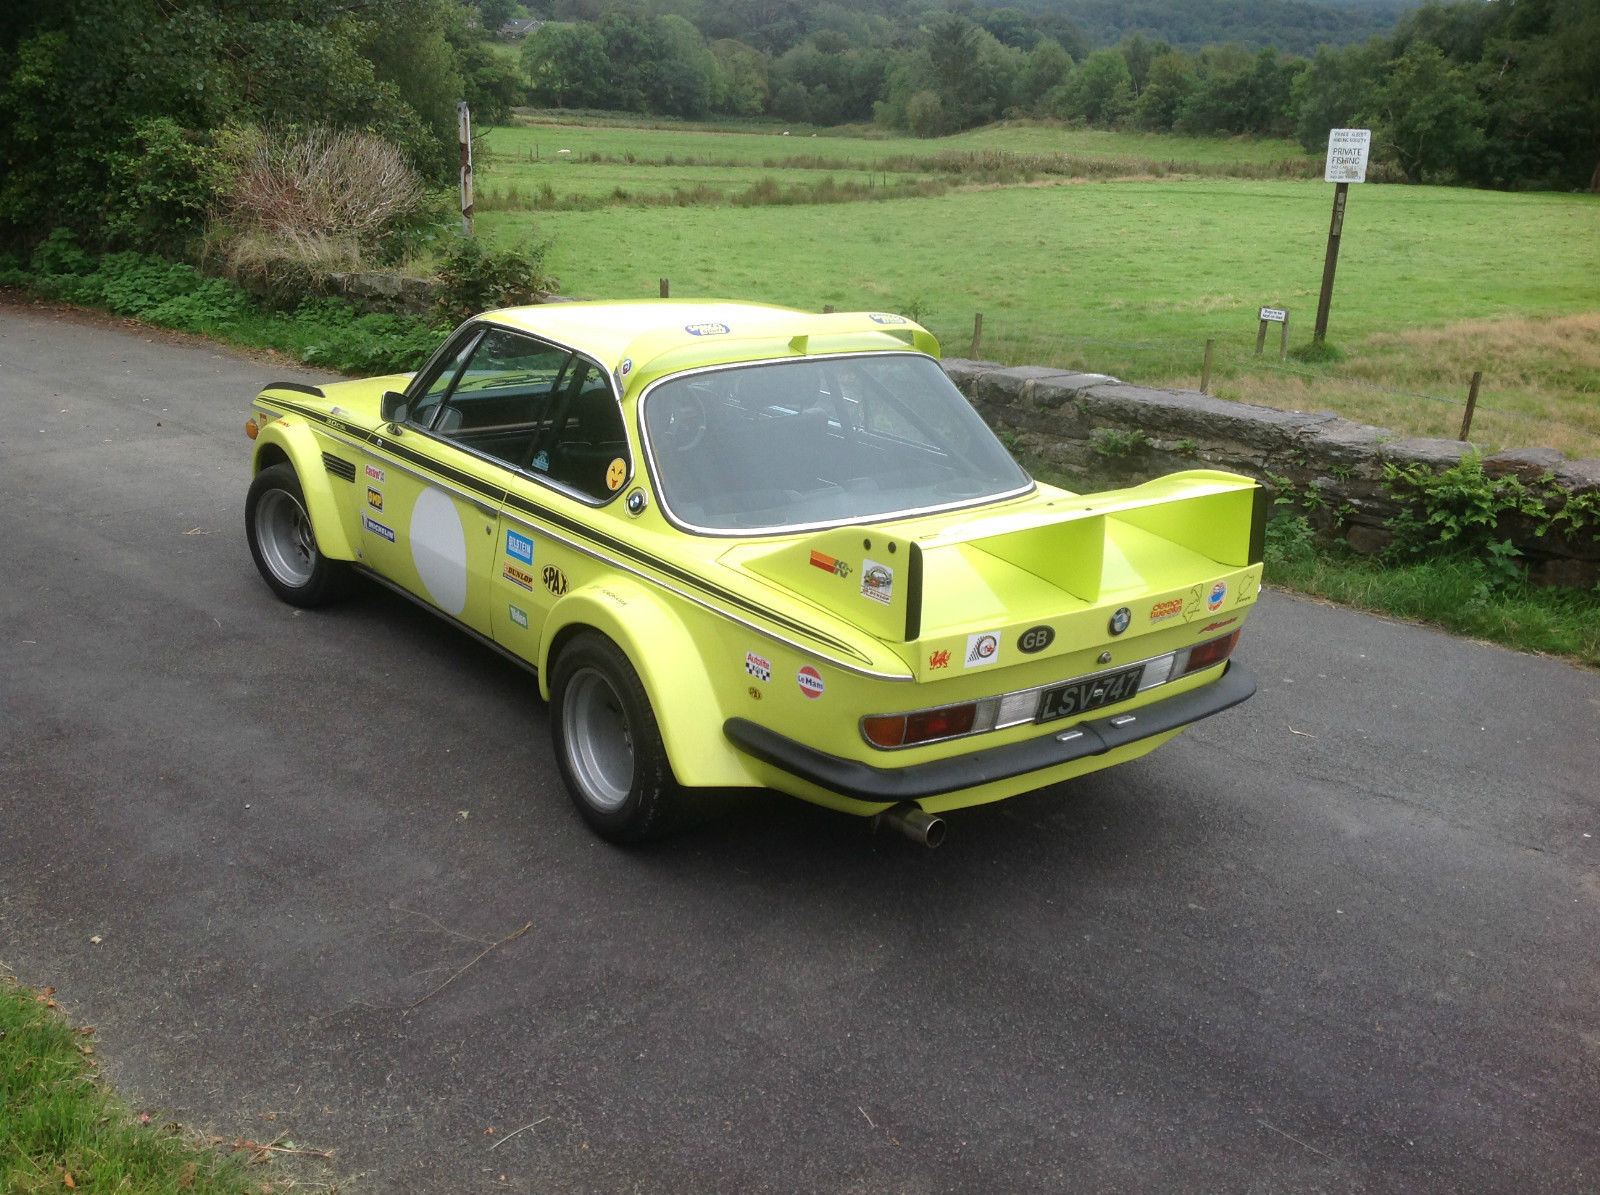 Auto For Sale Ebay: BMW 3.0CSL With Batmobile Widebody Kit Up For Sale On EBay